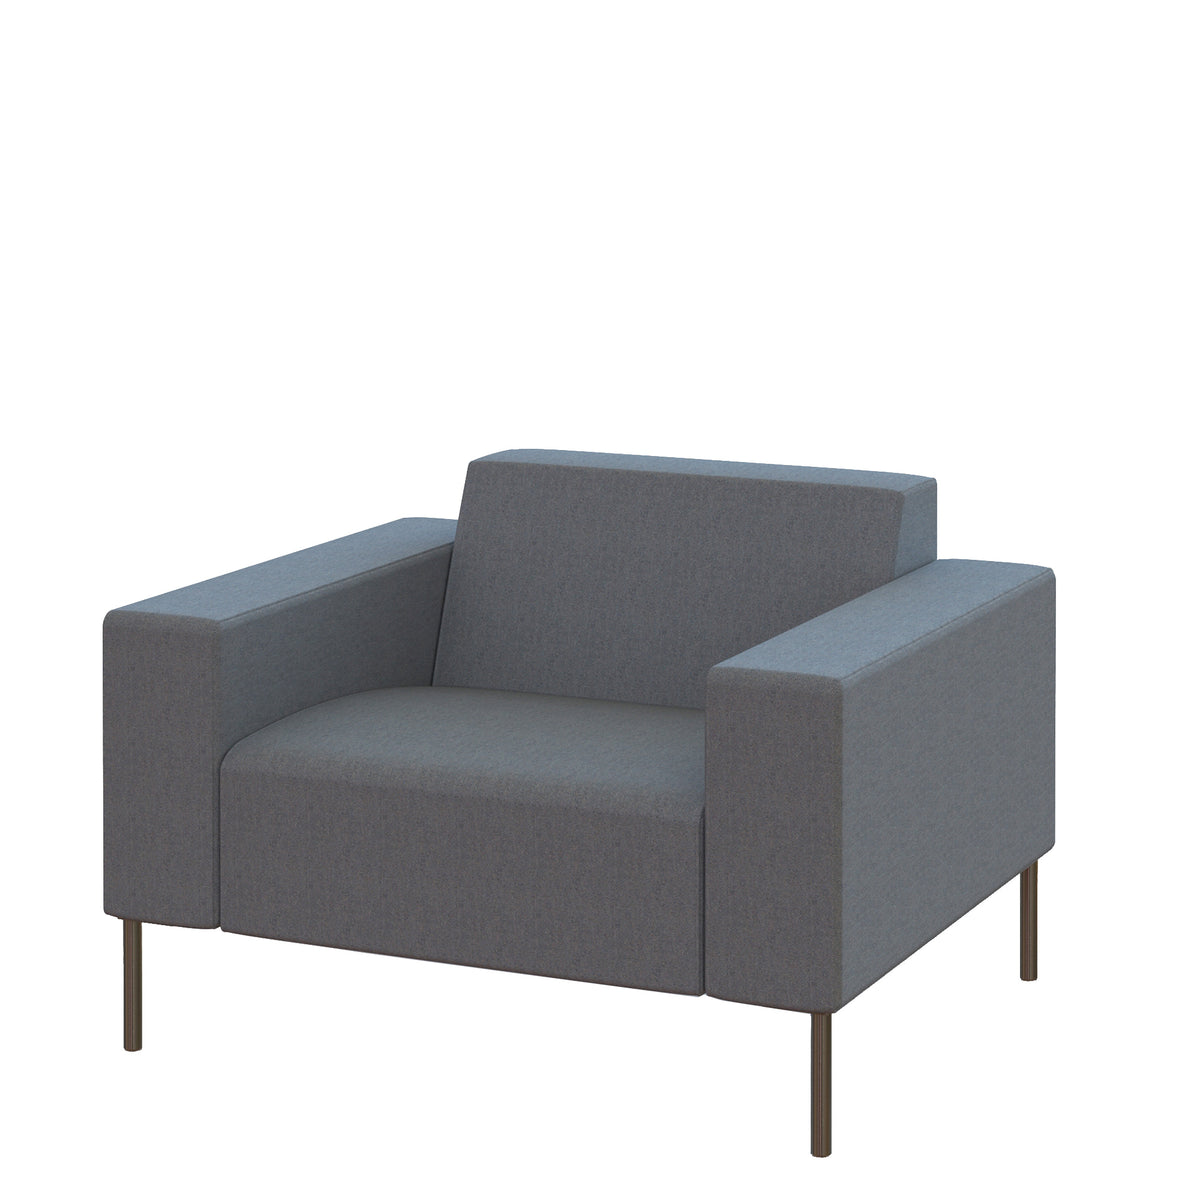 Hitch Mylius HM18 Origin Armchair Brushed Stainless Steel Legs Westminster